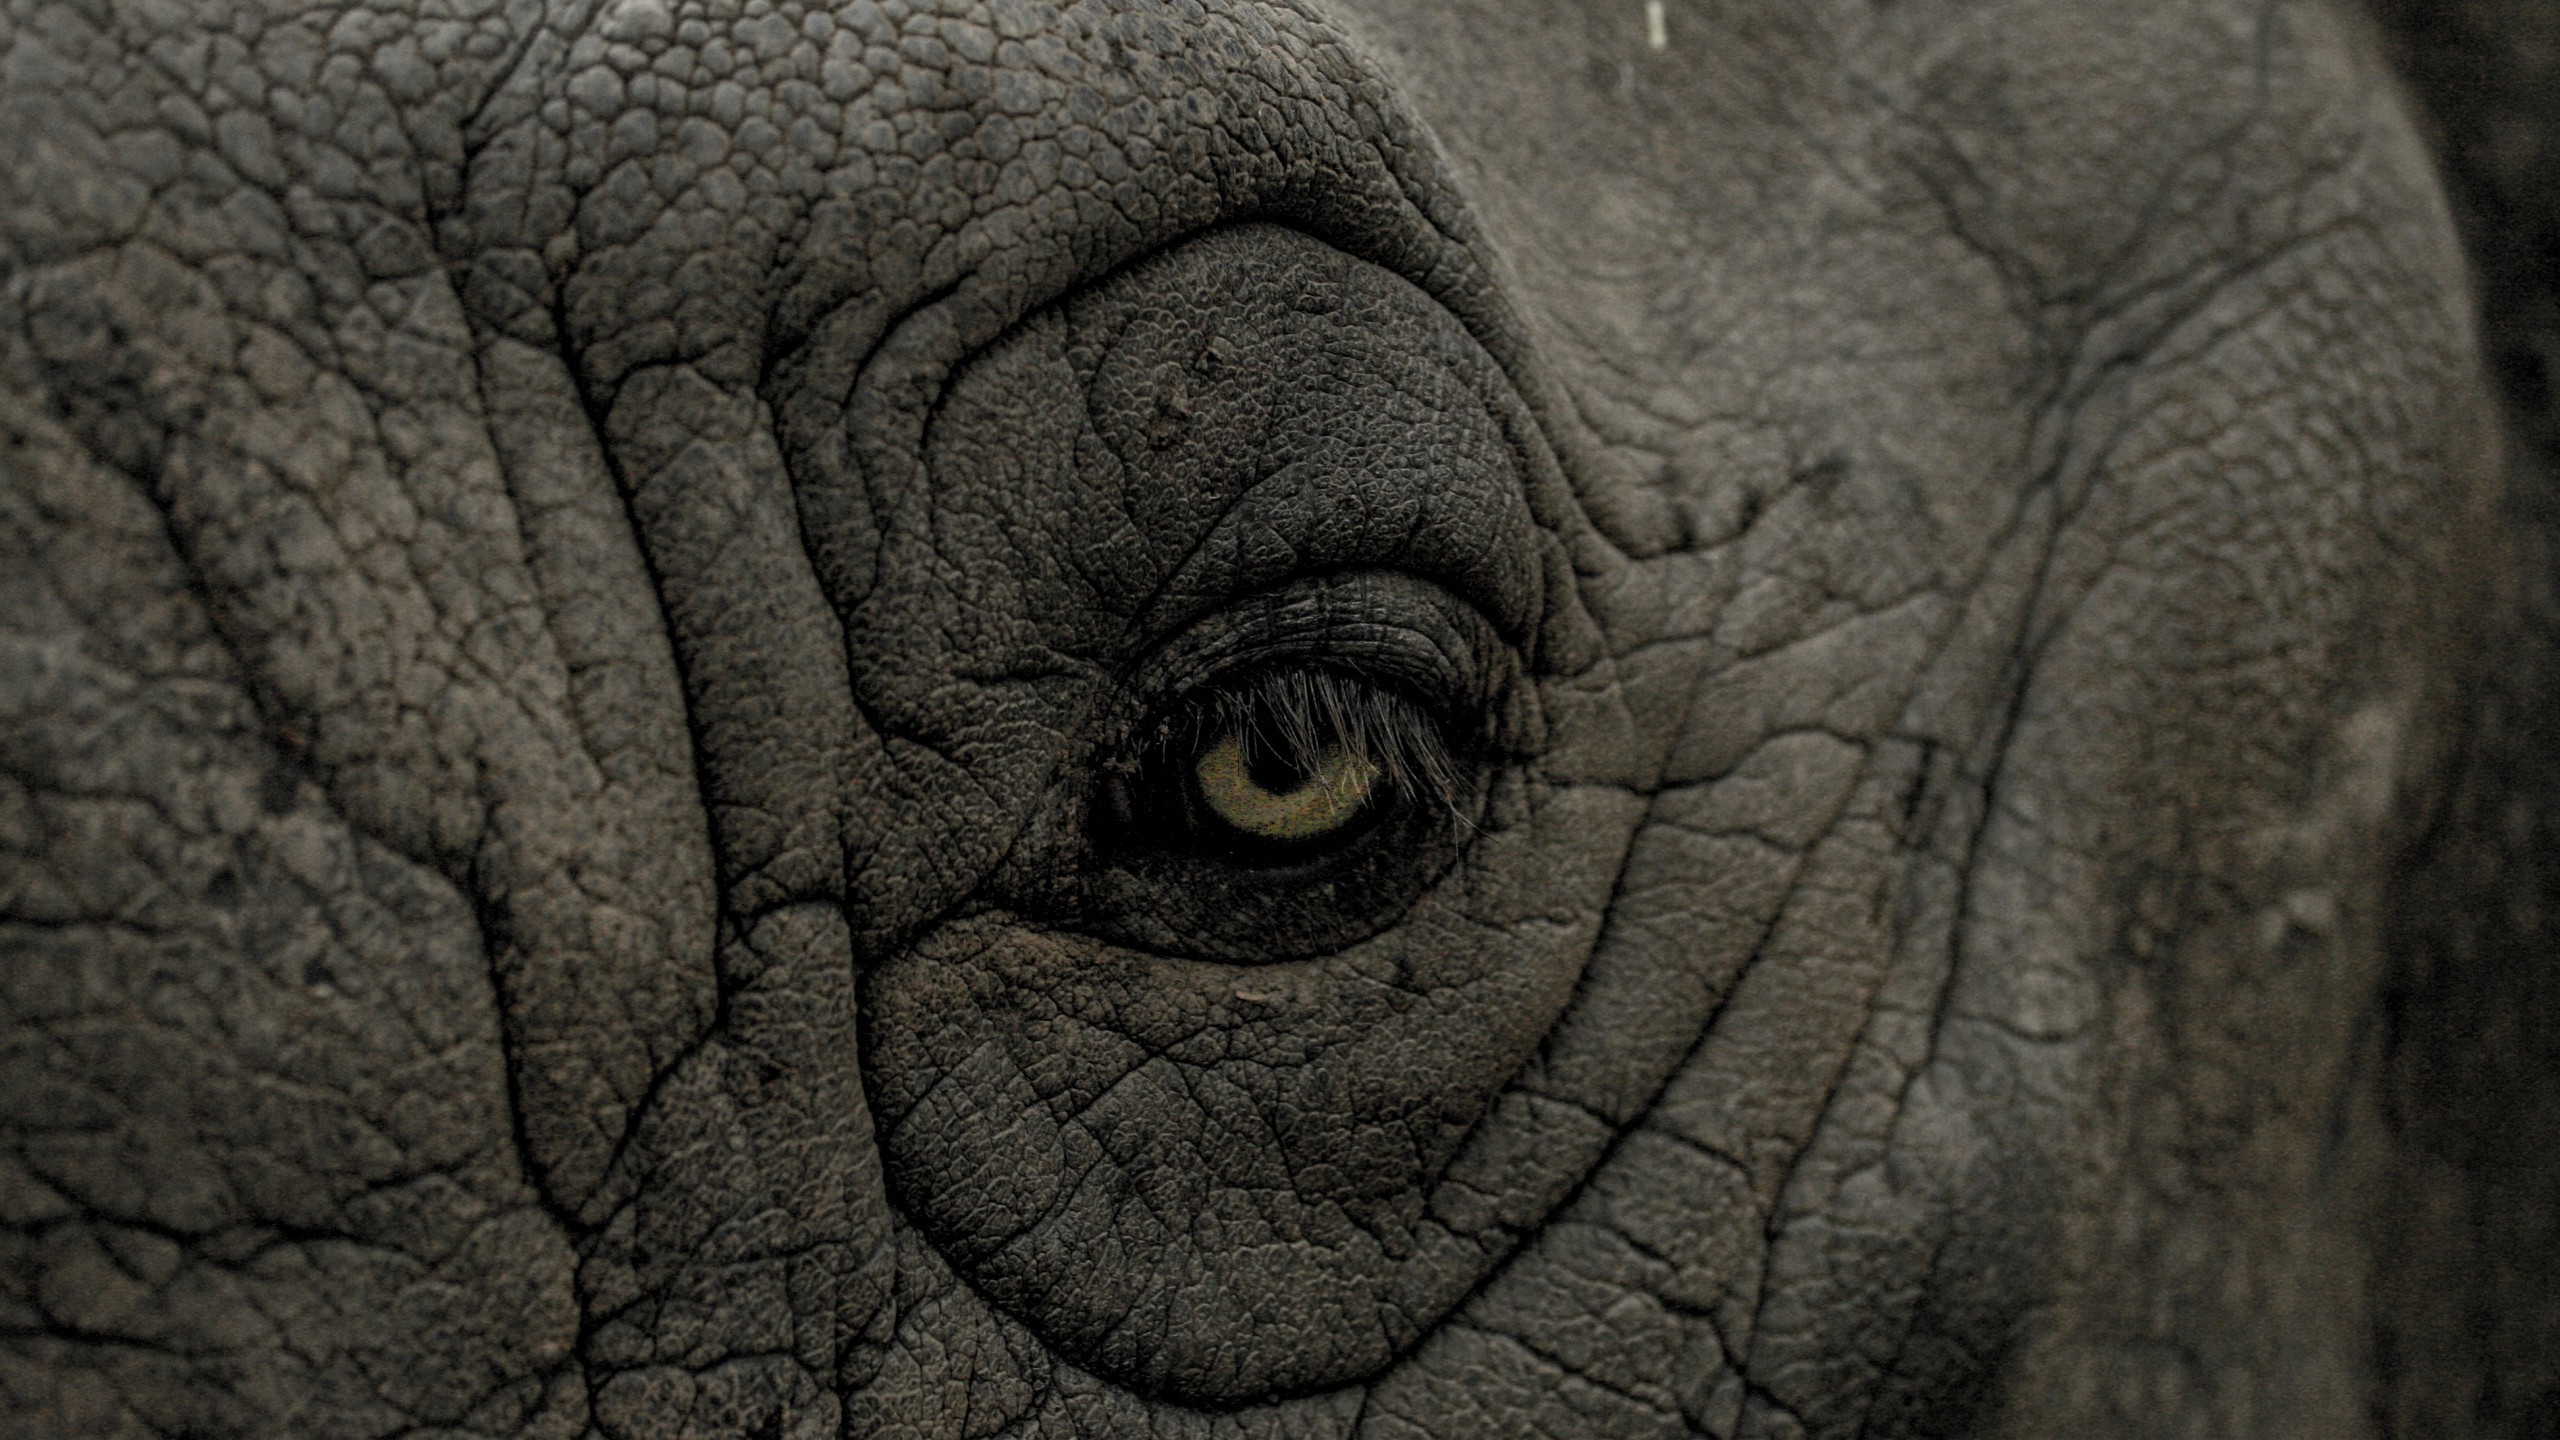 Wild Animal Wallpaper For Mobile Eyes Nature Animals Wrinkles Closeup Rhino Skin Wallpapers